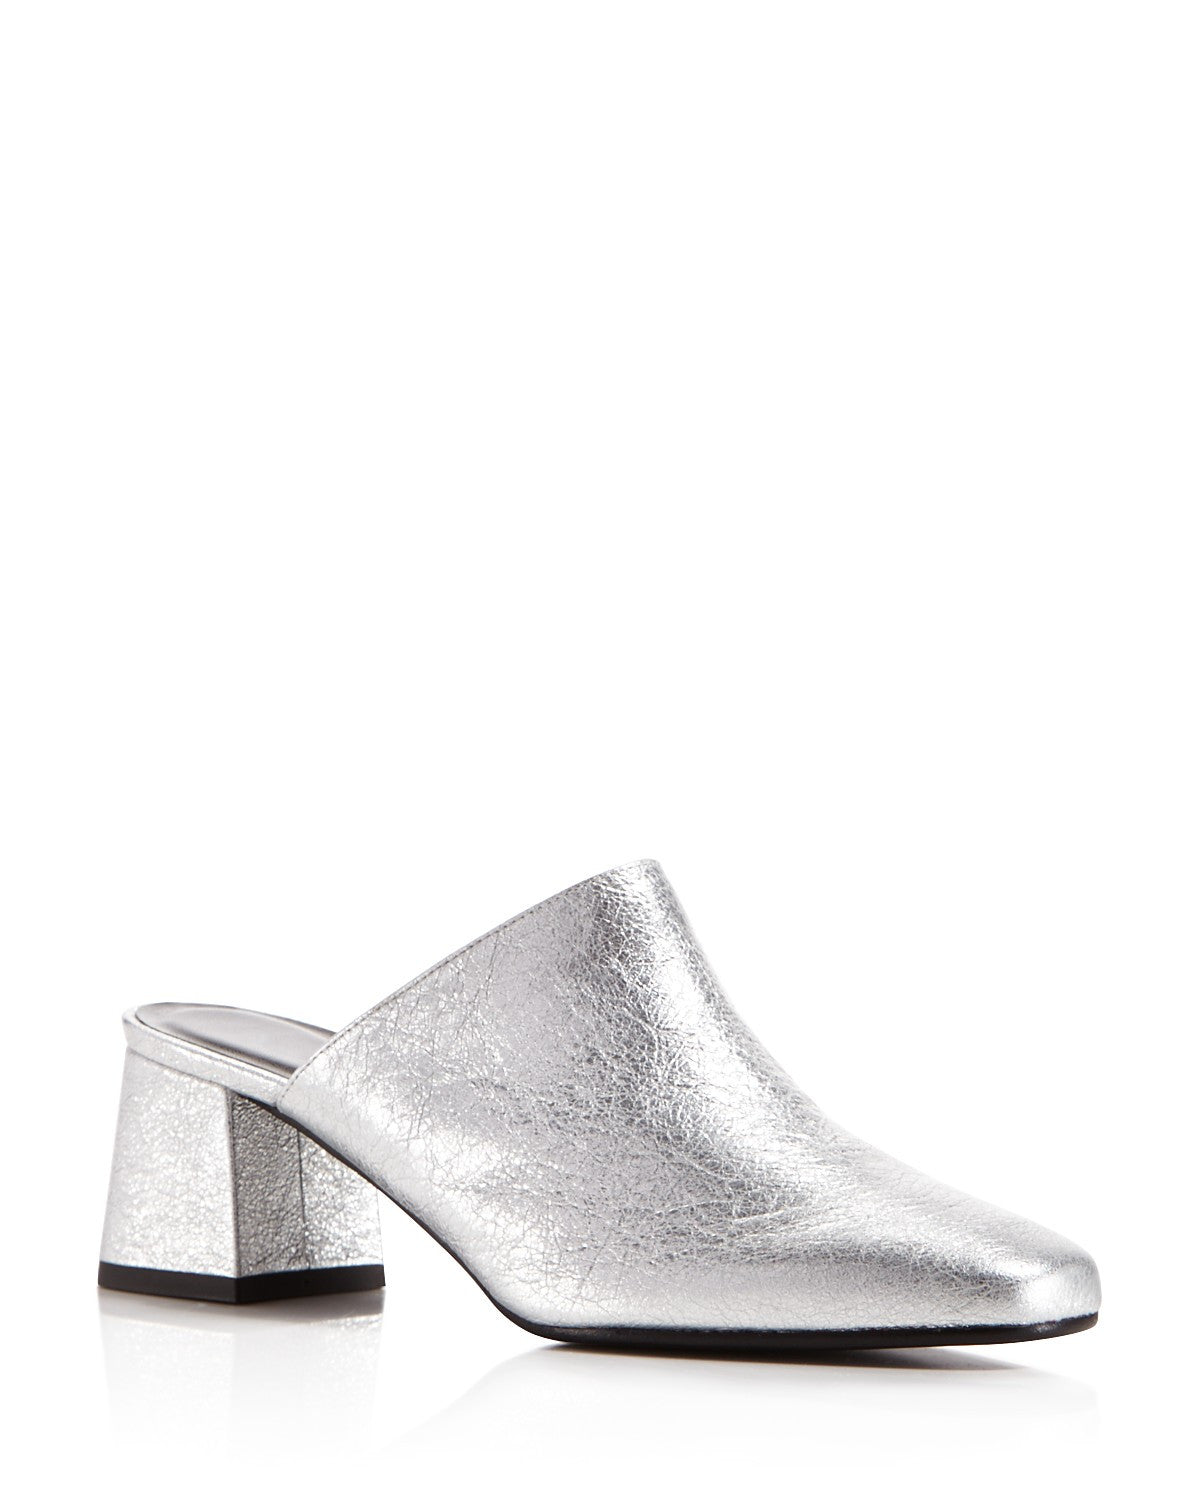 Aska Gem Leather Mules free shipping official site sale buy very cheap for sale best store to get cheap price kPUh1ey